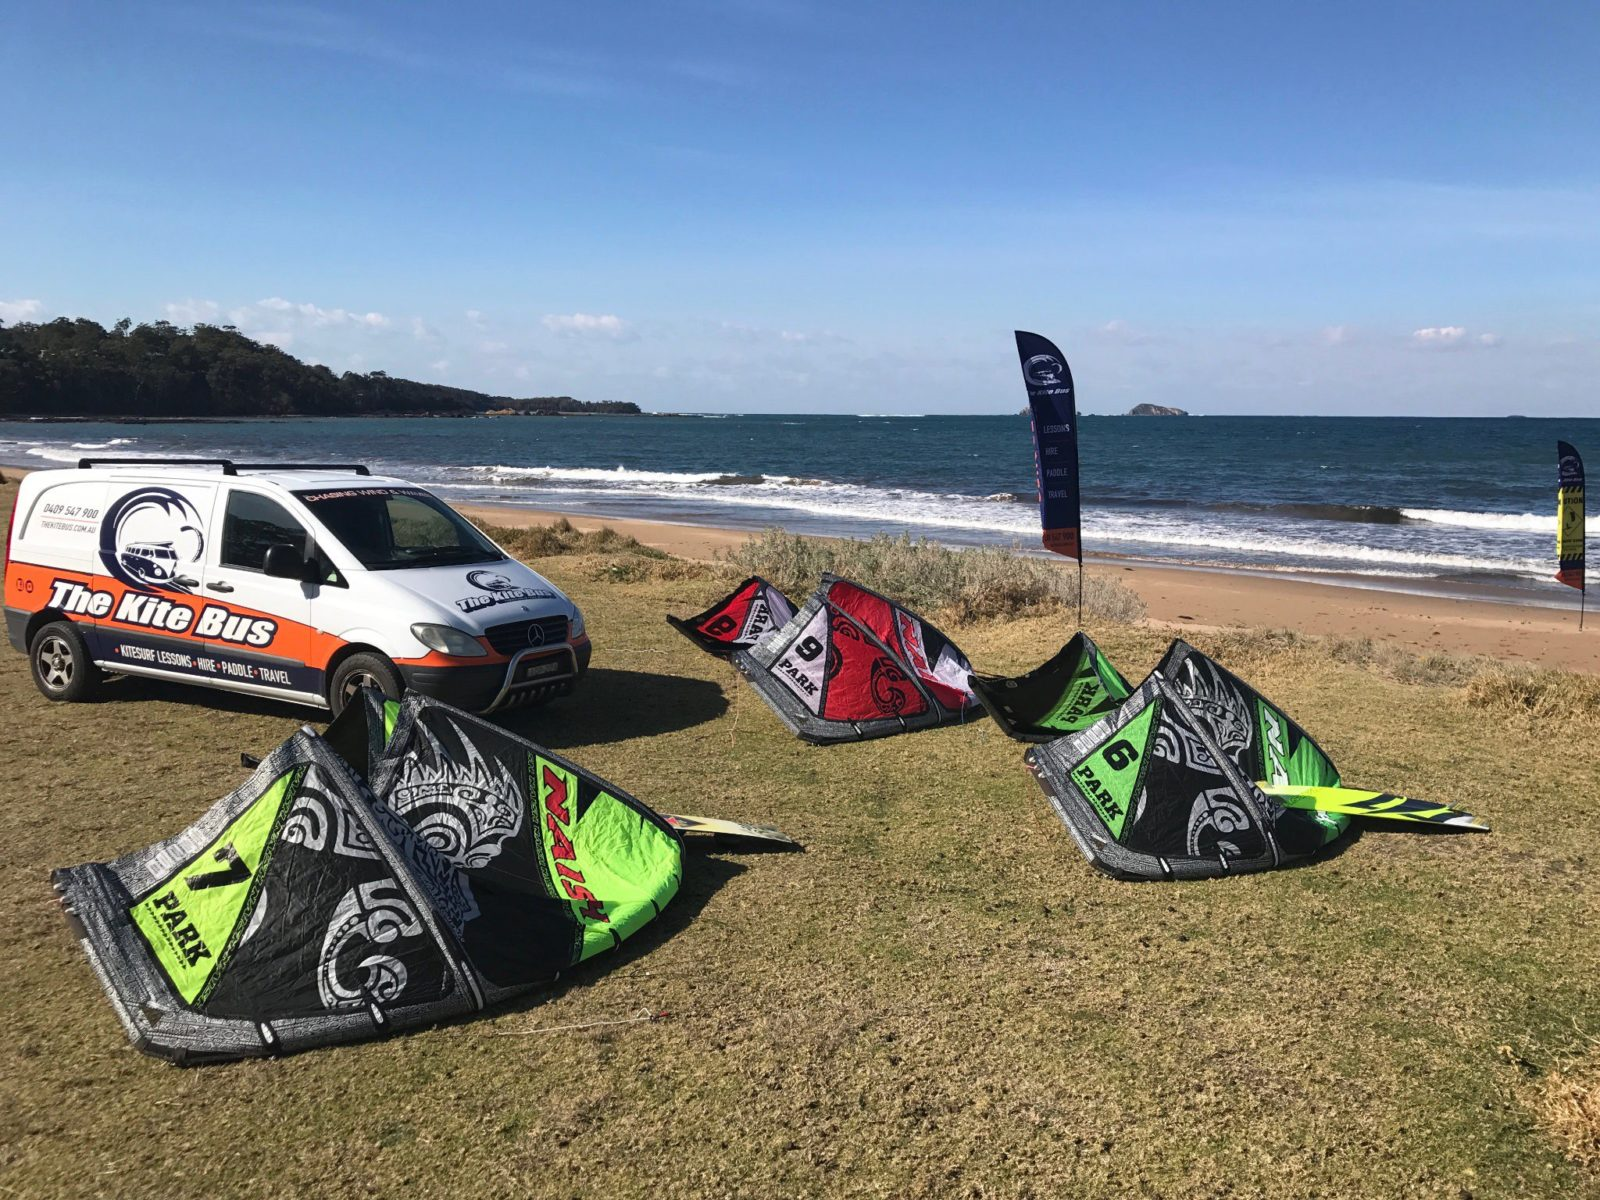 The Kite Bus, kitesurfing lessons, hire and tours Batemans Bay NSW.